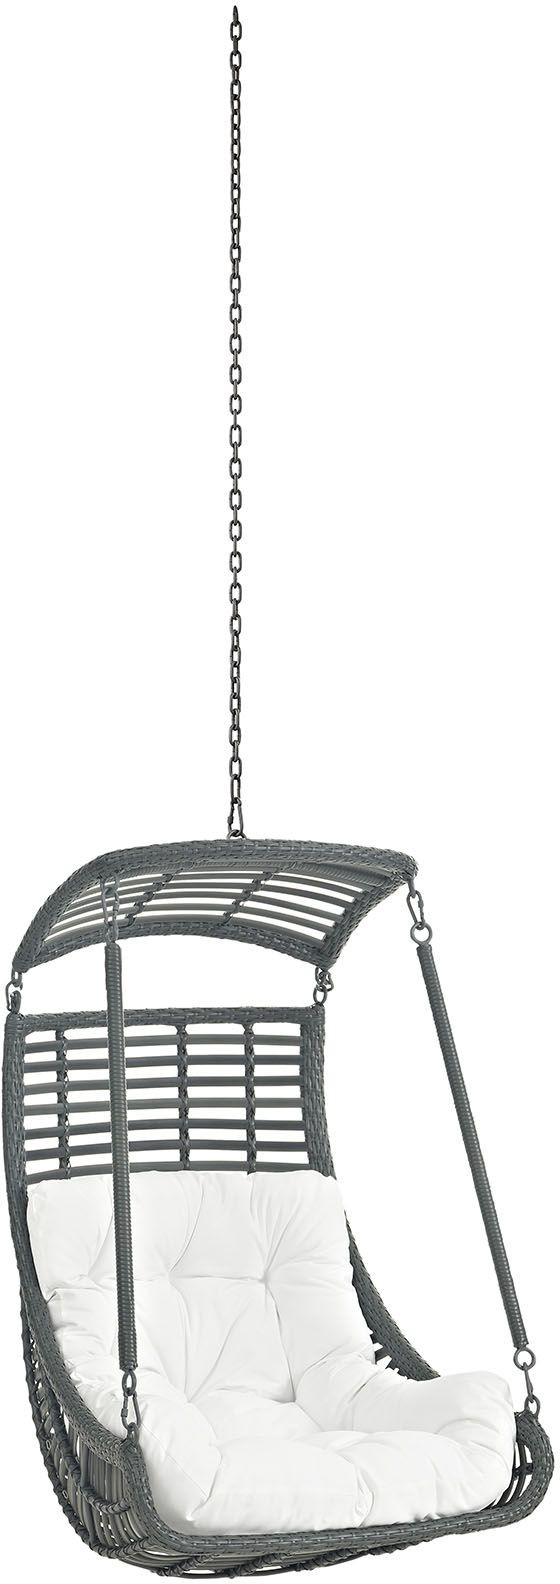 Jungle white outdoor patio swing chair without stand eei for White porch swing with stand